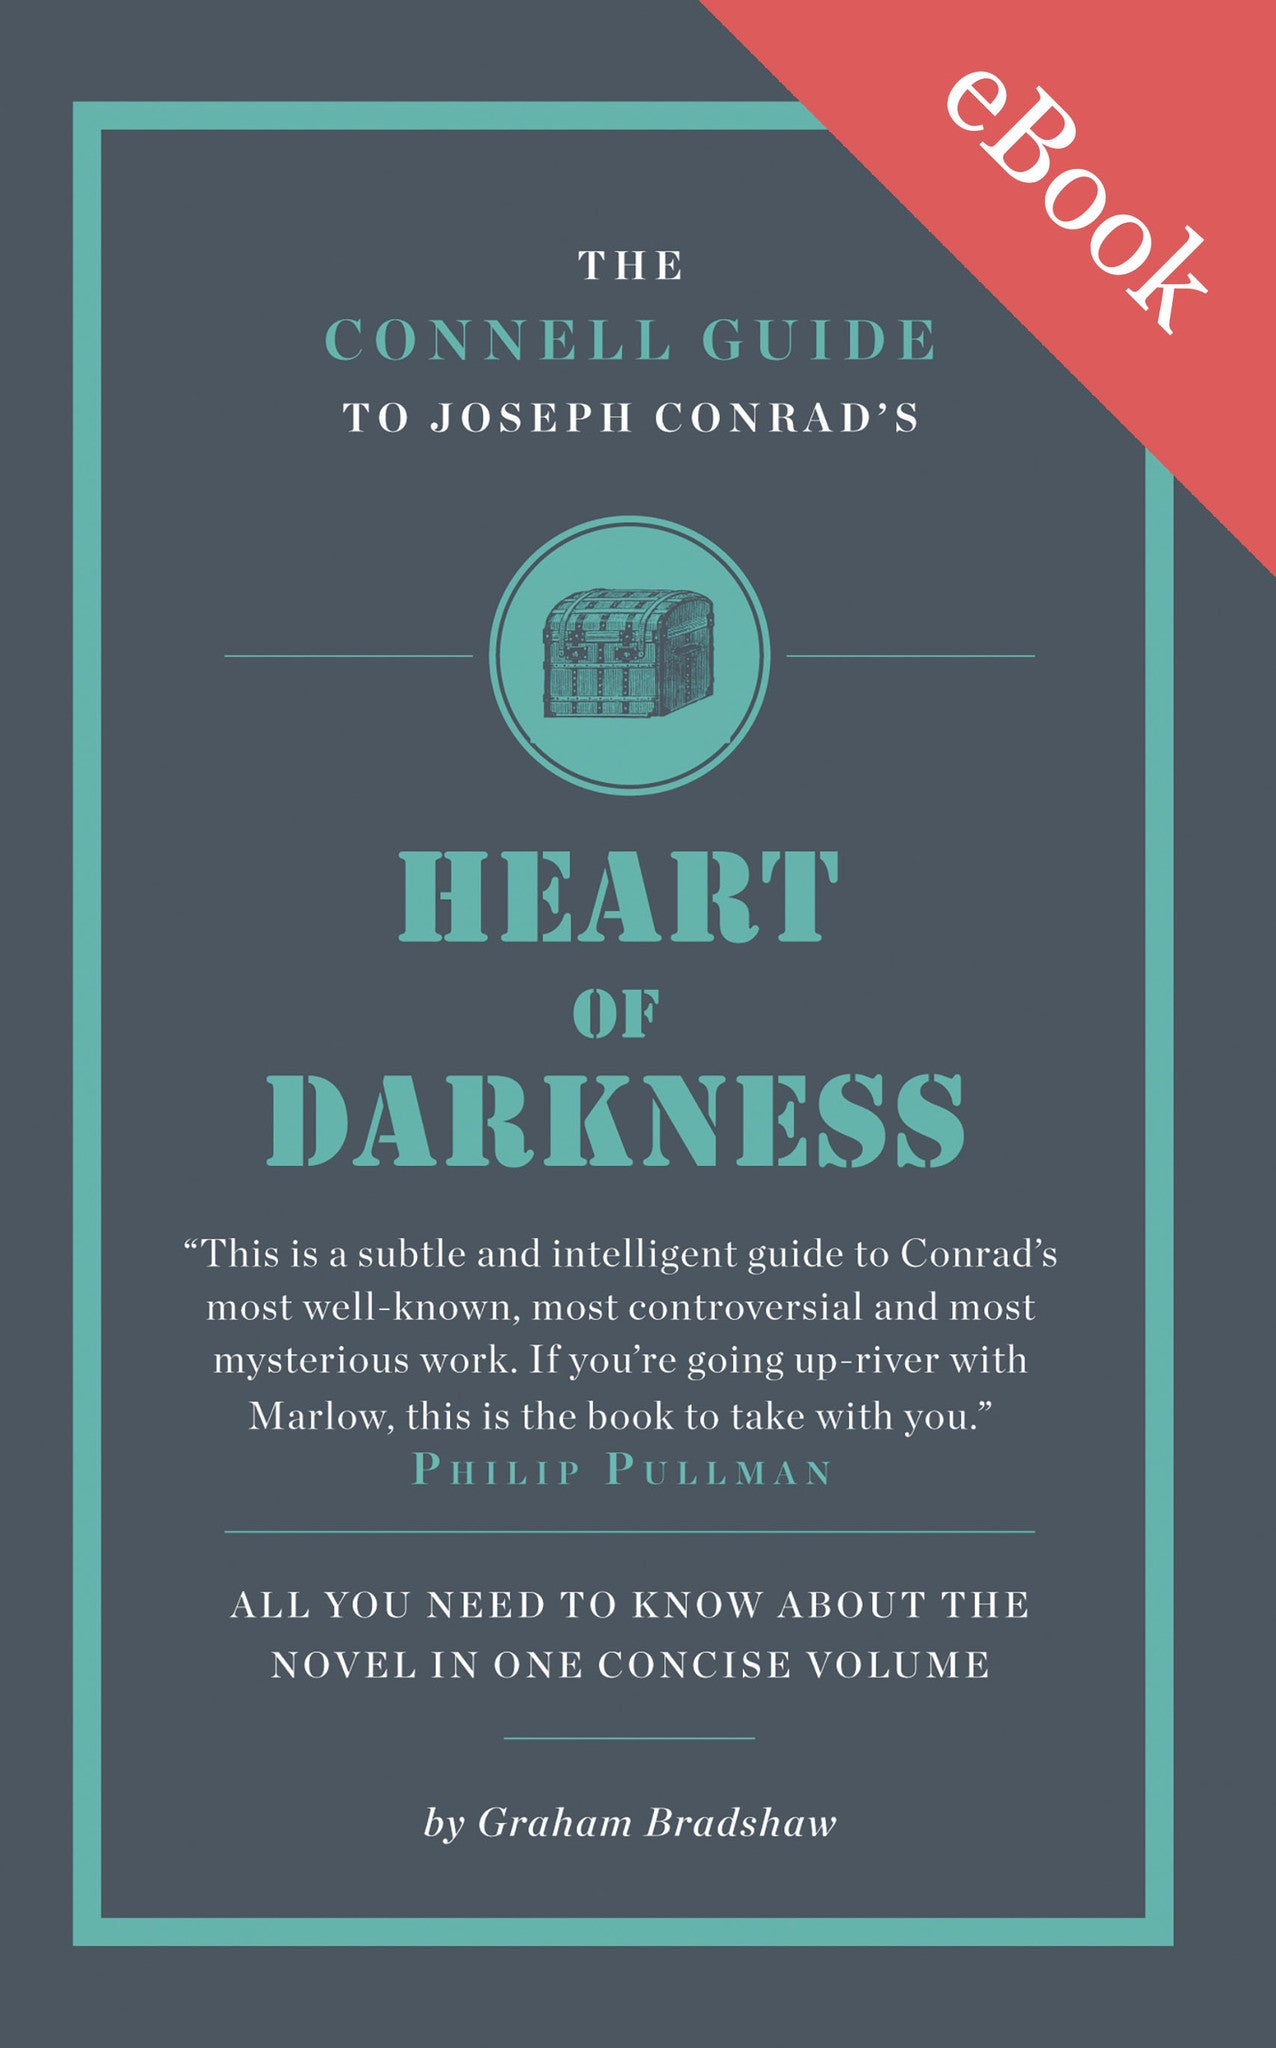 heart of darkness critical essay joseph conrad s the heart of  joseph conrad s the heart of darkness study guide connell guides joseph conrad s the heart